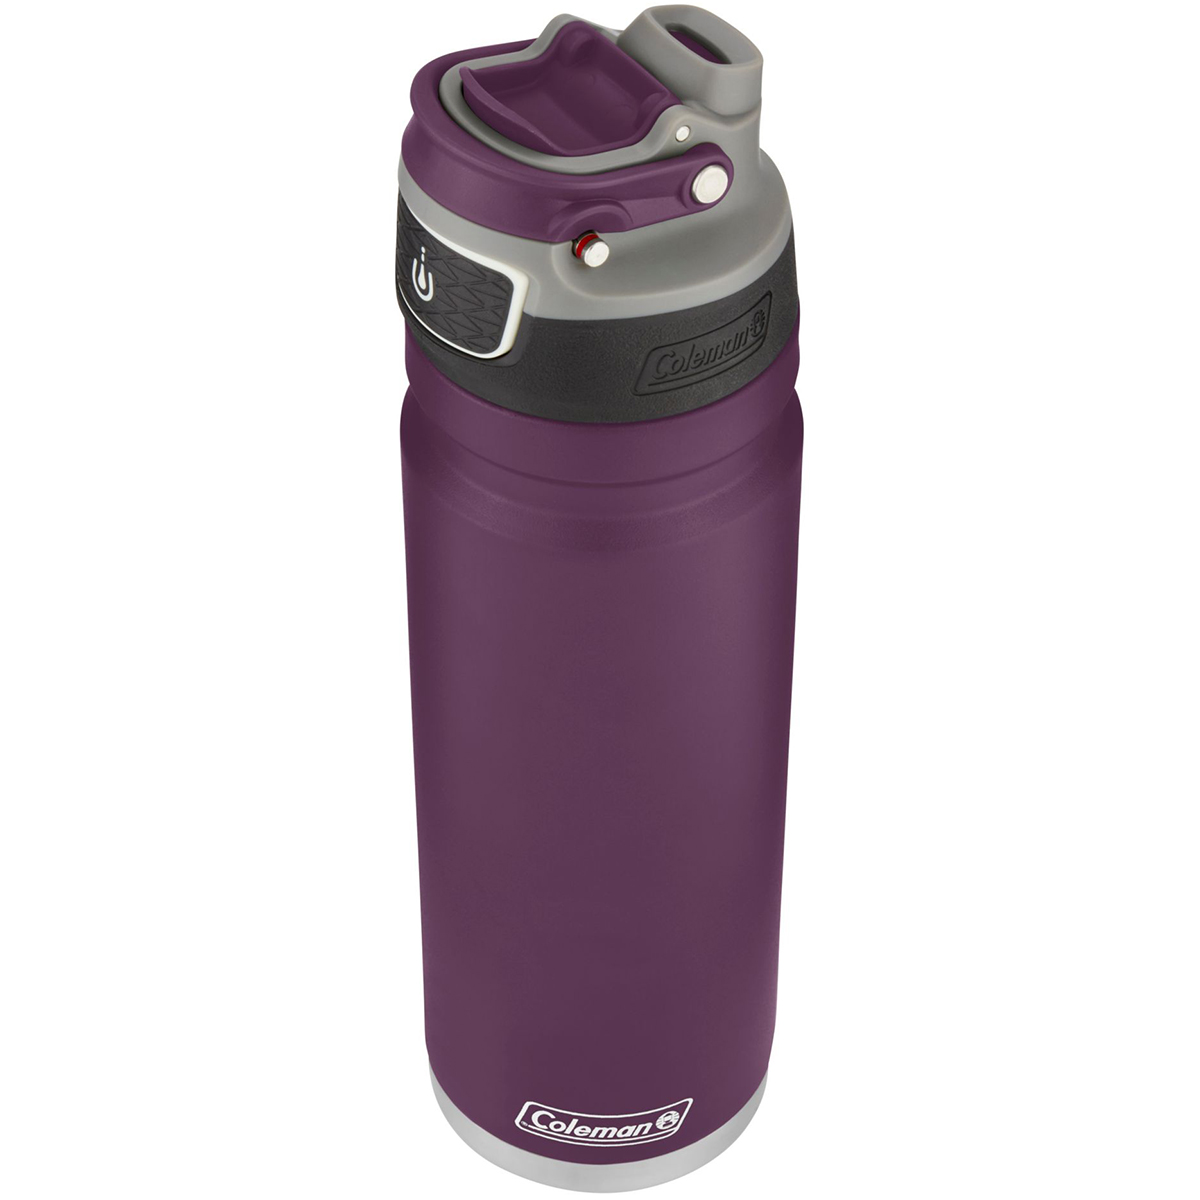 Coleman-24-oz-Free-Flow-Autoseal-Insulated-Stainless-Steel-Water-Bottle thumbnail 28